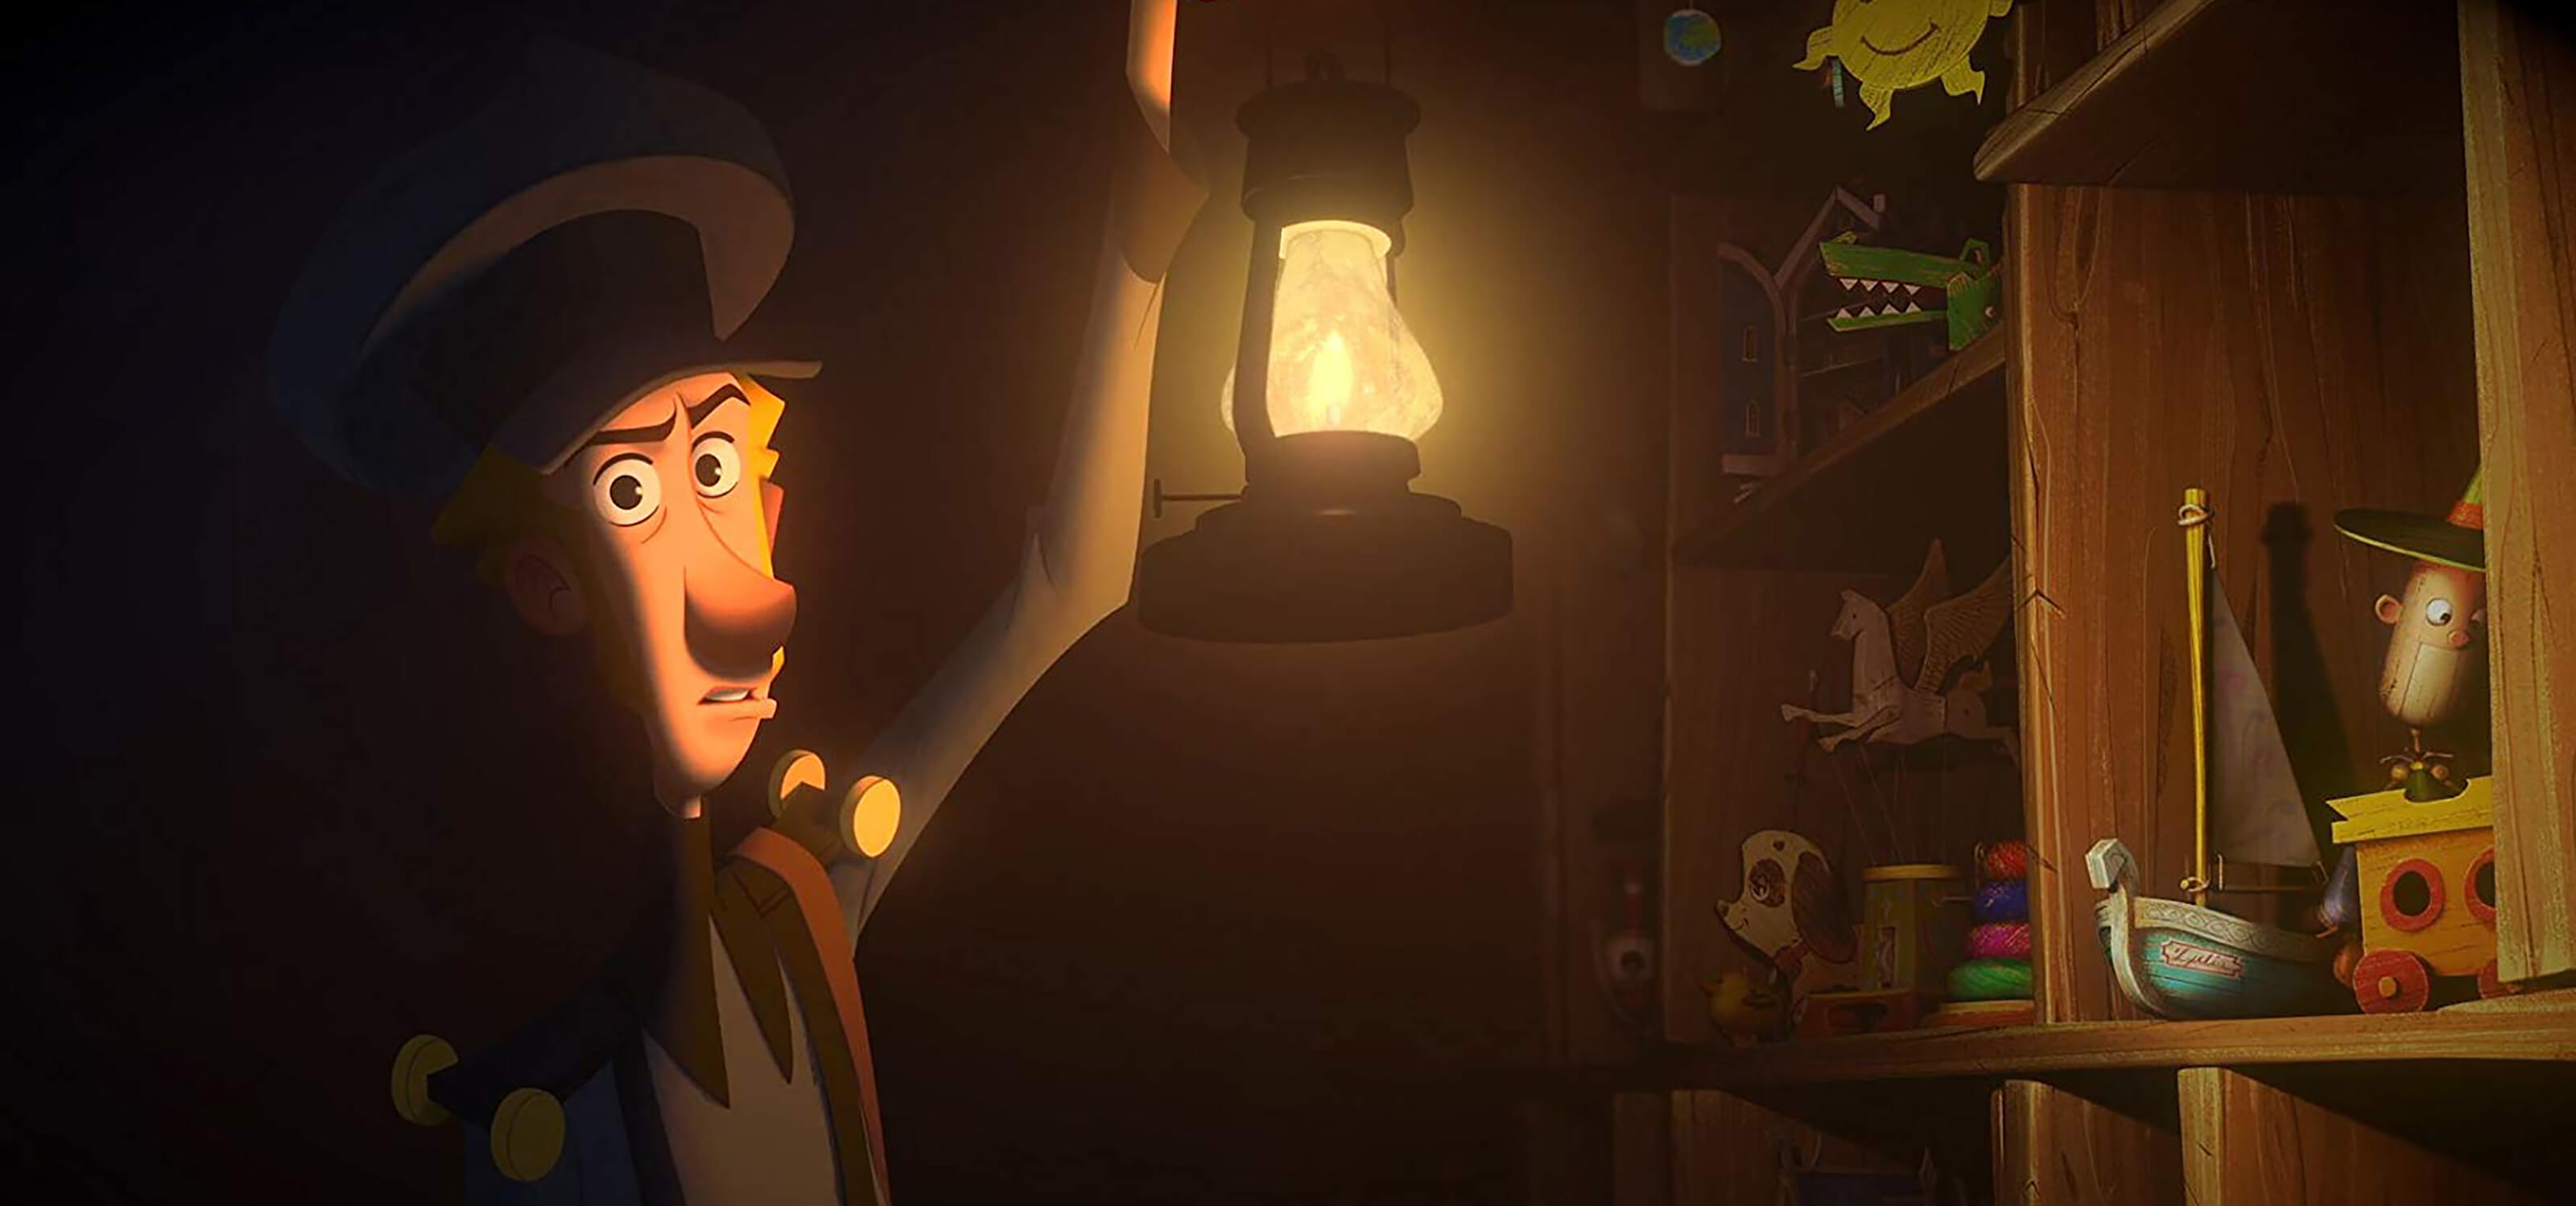 Still shot from the film Klaus: a postmaster holds a lantern in a dark room, revealing shelves of toys.